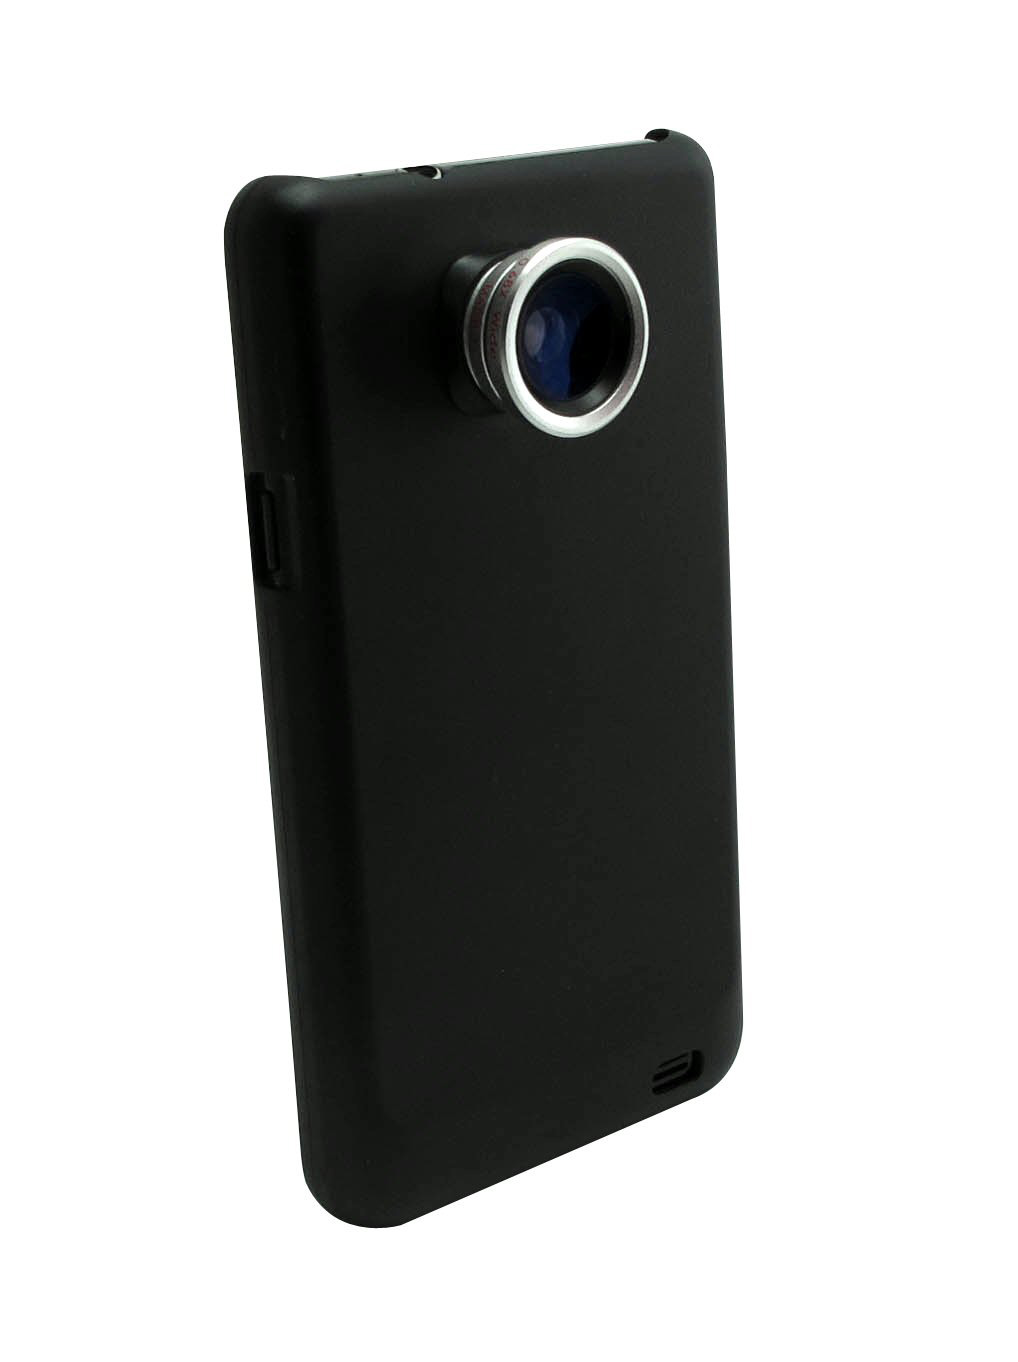 TANLA Wide Angle/Macro Lens for Samsung Galaxy S2